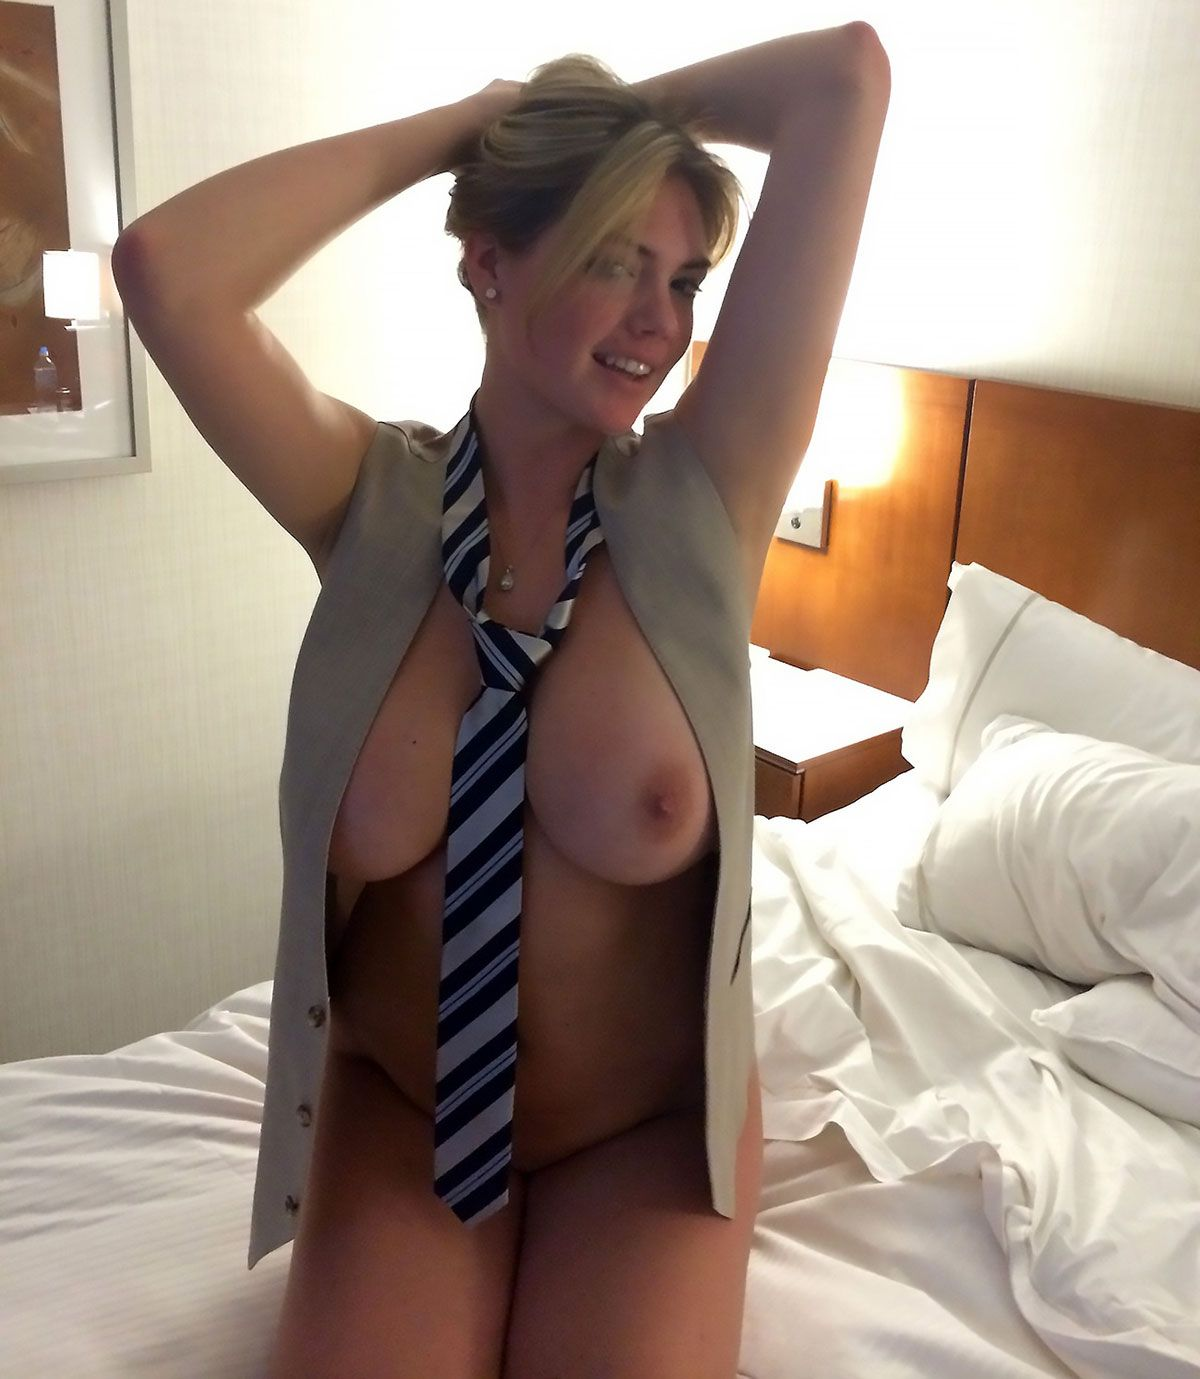 Kate Upton Nude Leaked The Fappening 0002